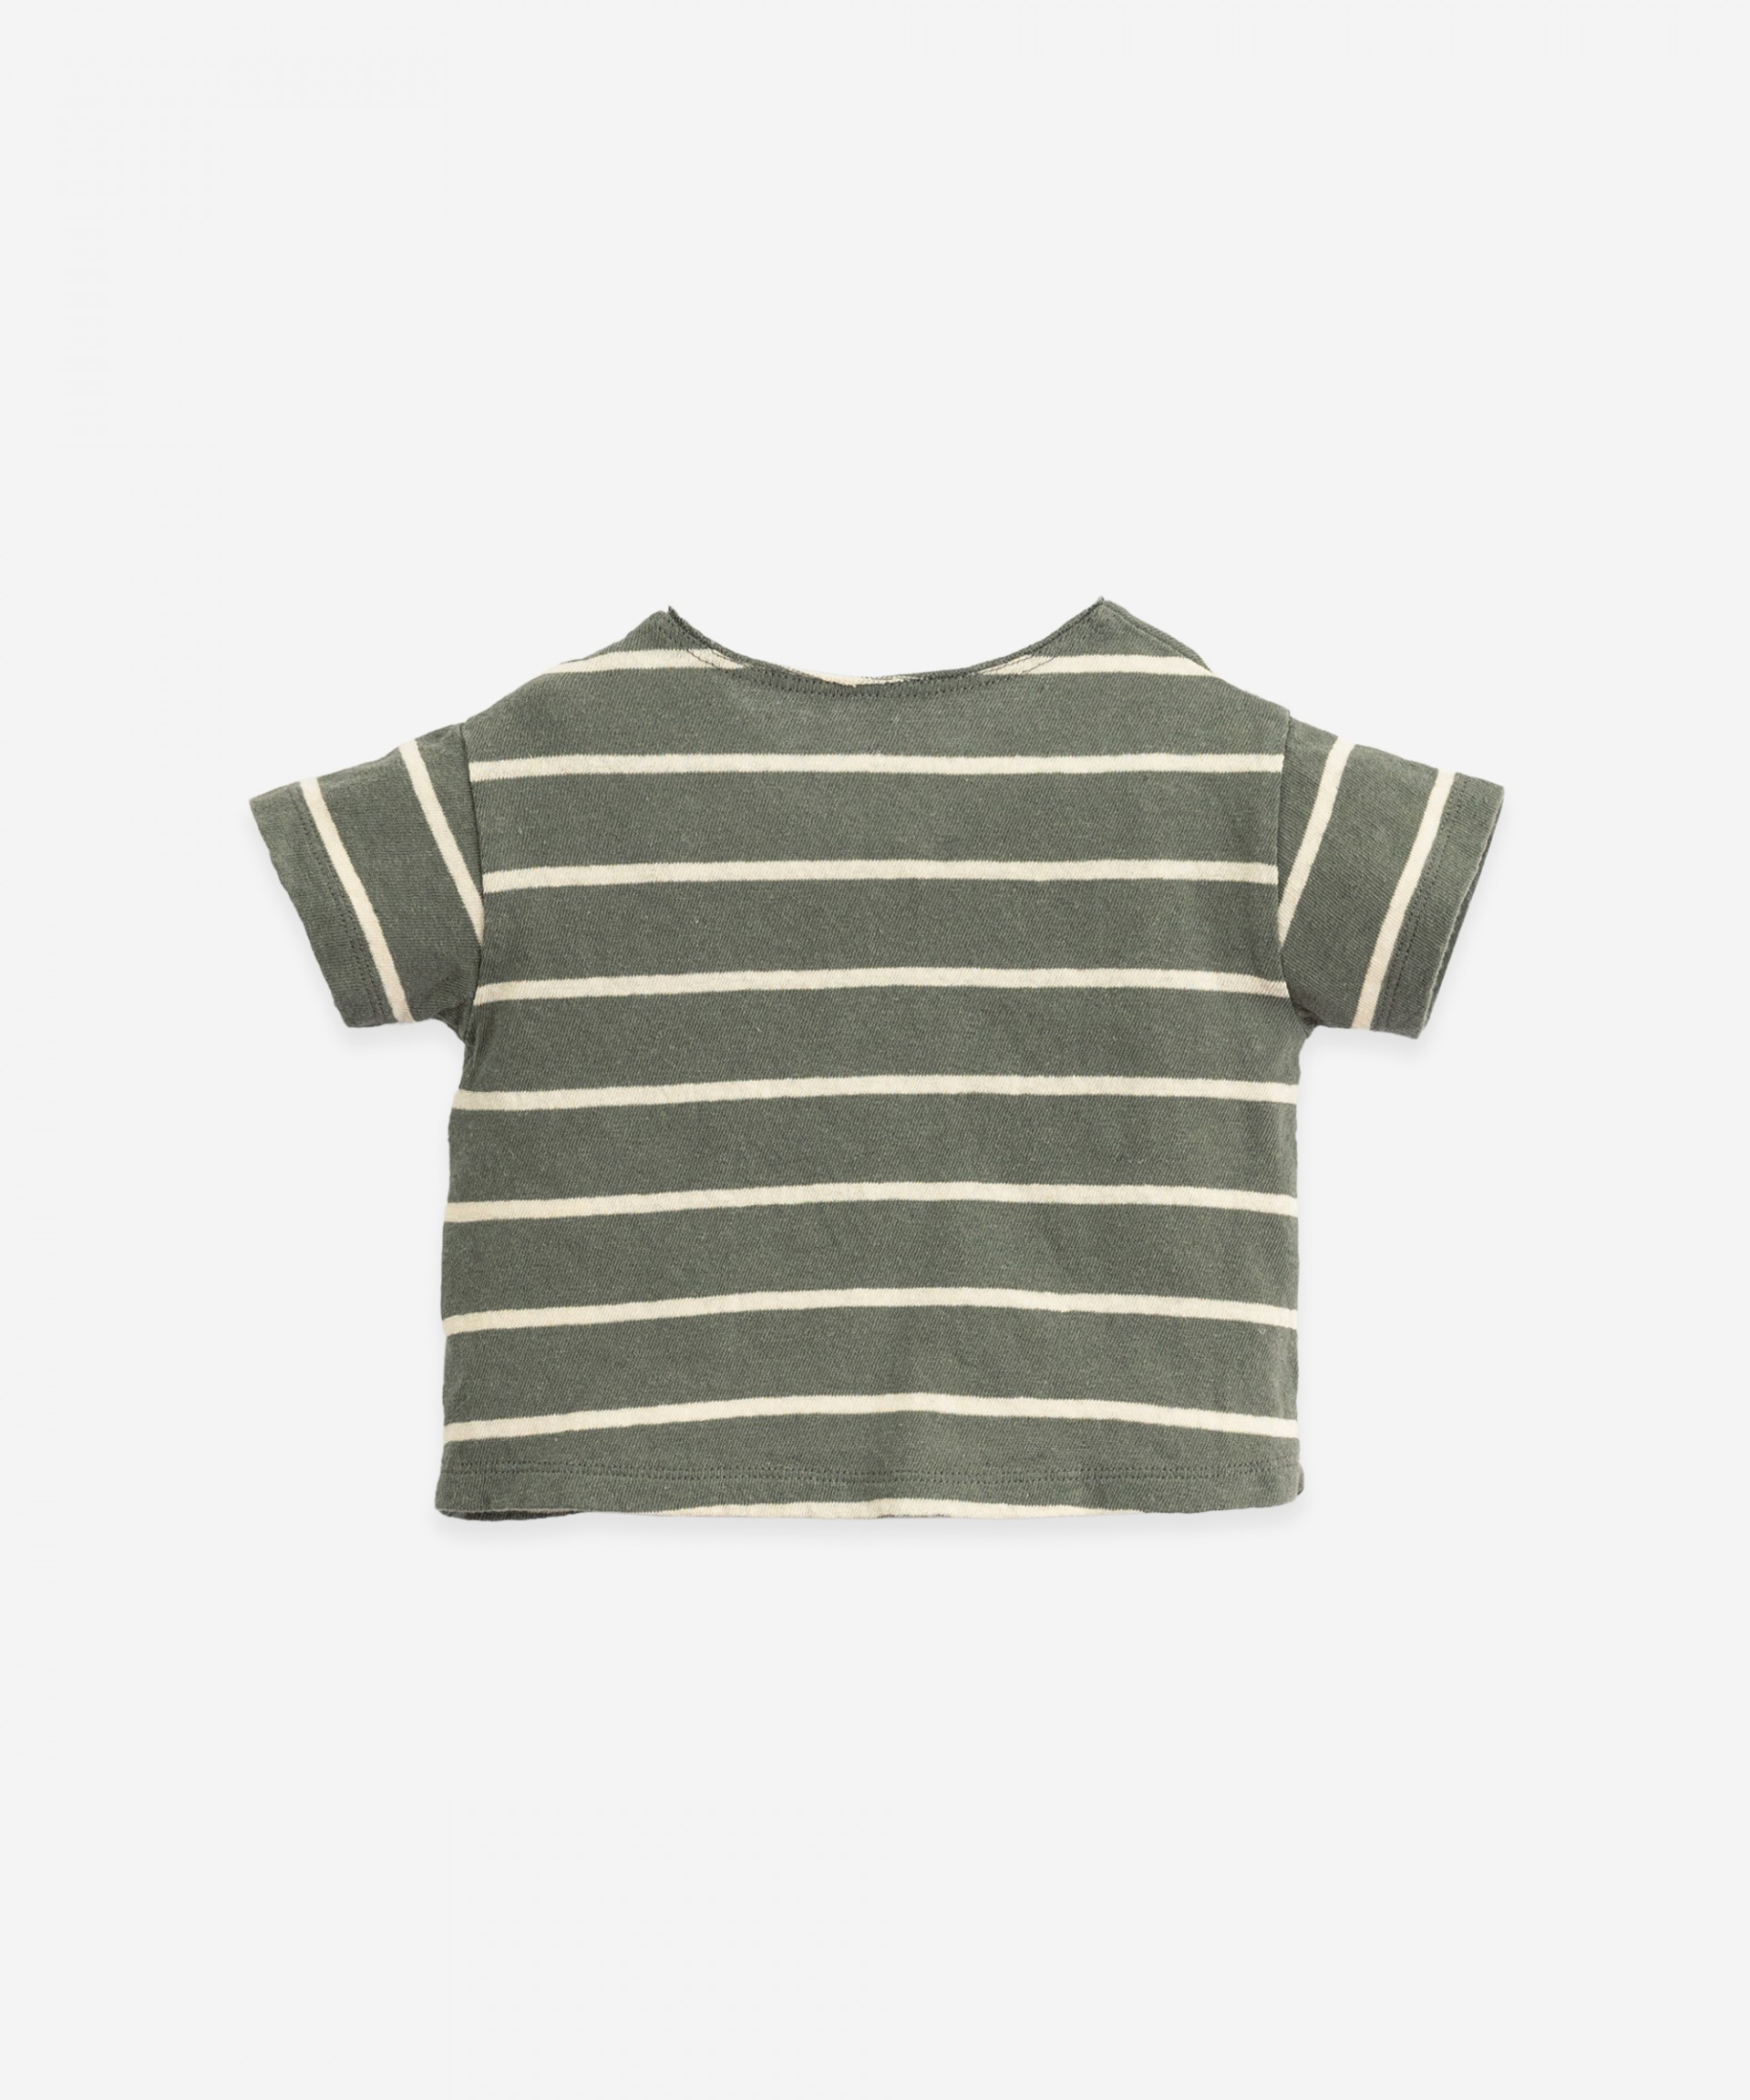 T-shirt with button opening | Botany